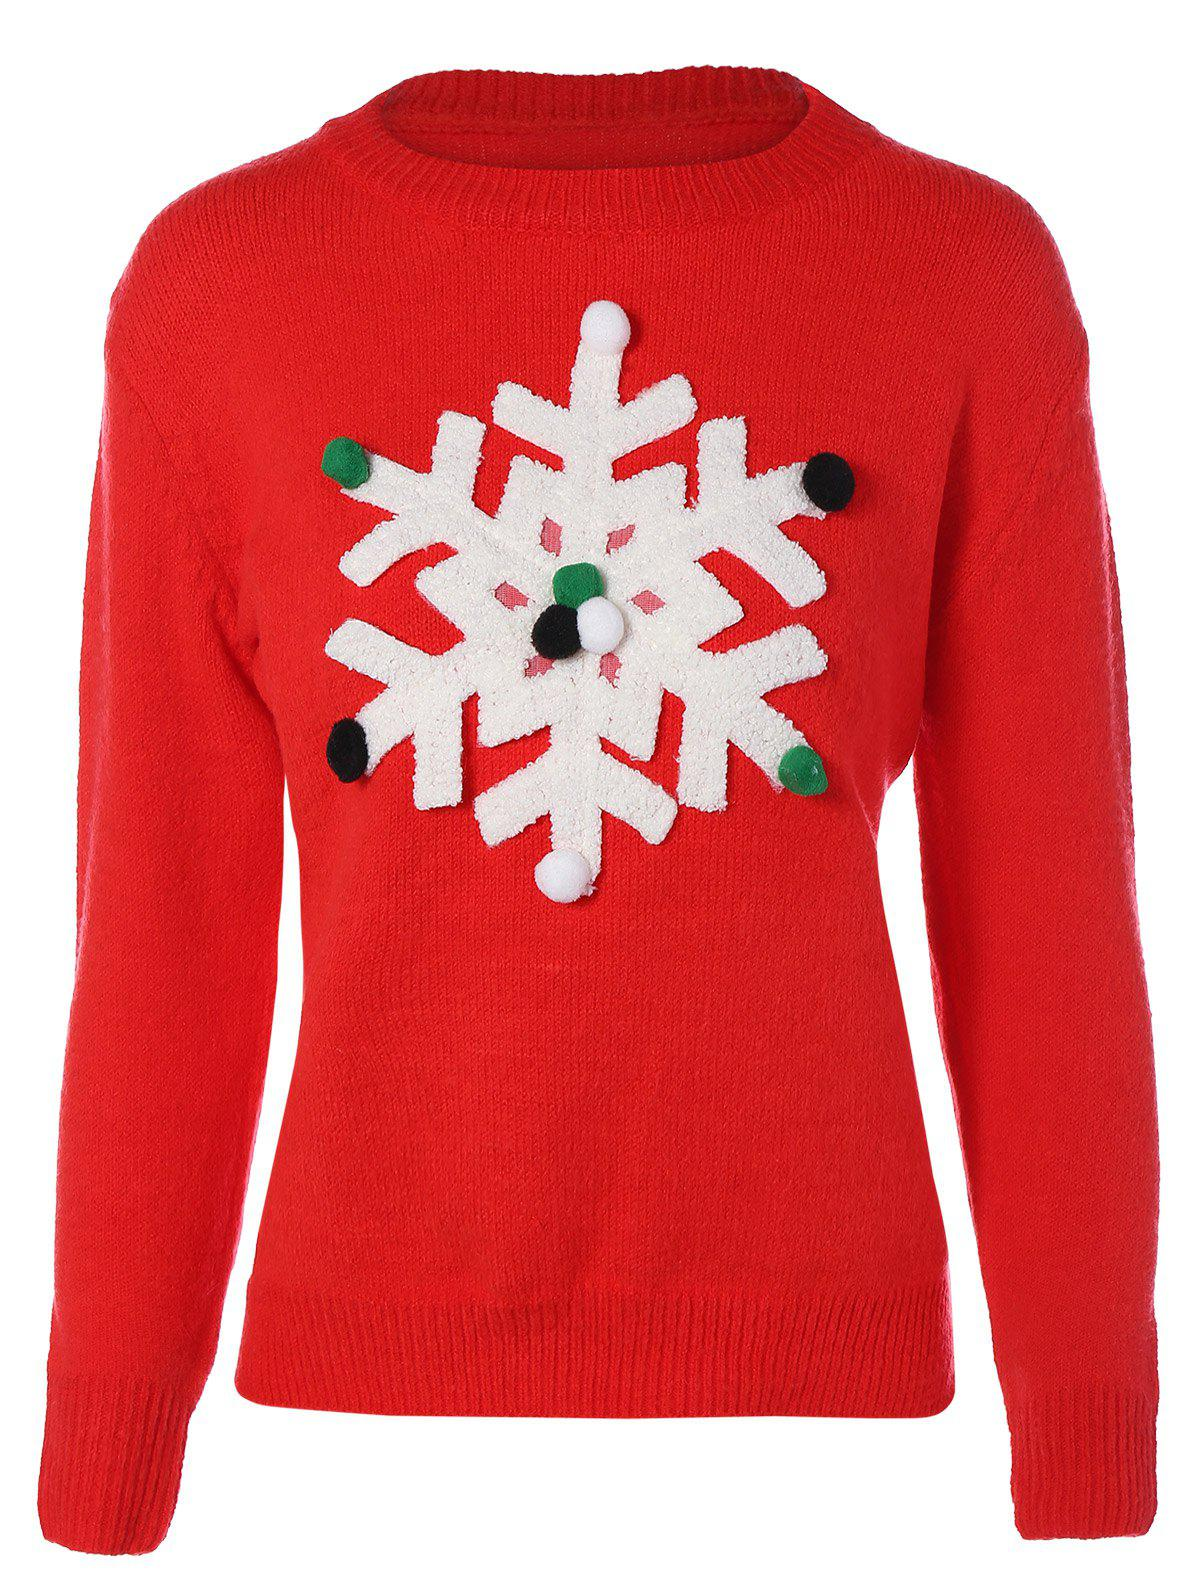 Christmas Snowflakes SweaterWOMEN<br><br>Size: M; Color: RED; Type: Pullovers; Material: Polyester; Sleeve Length: Full; Collar: Round Neck; Style: Fashion; Pattern Type: Patchwork; Season: Fall,Spring,Winter; Weight: 0.390kg; Package Contents: 1 x Sweater;